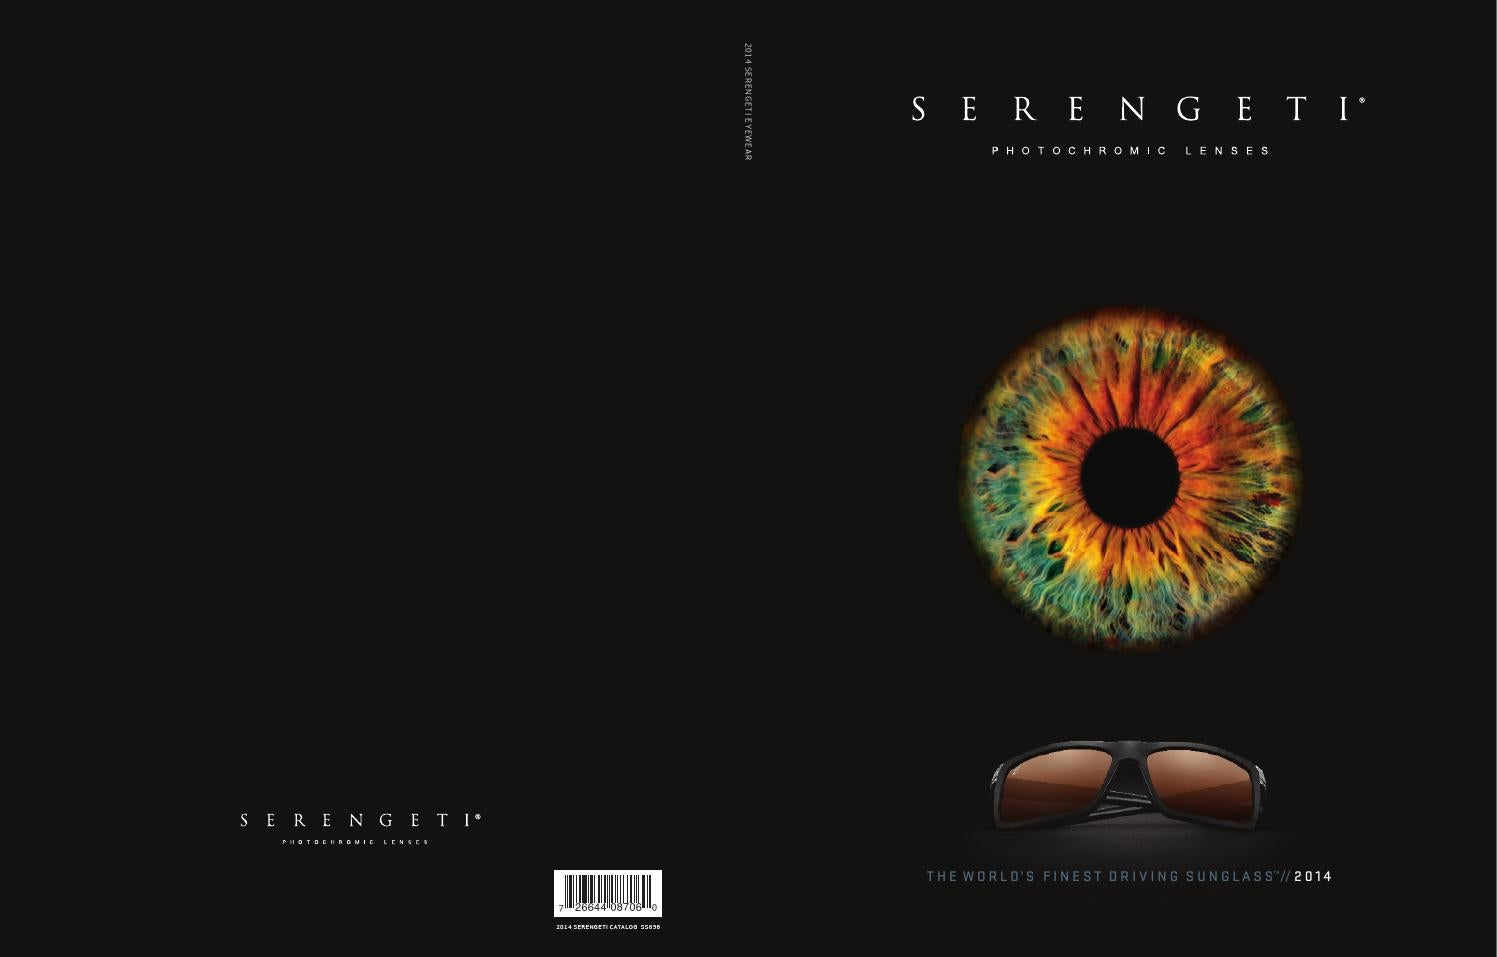 a2838416152a SERENGETI 2014 by РЕСПЕКТОПТИКА - issuu